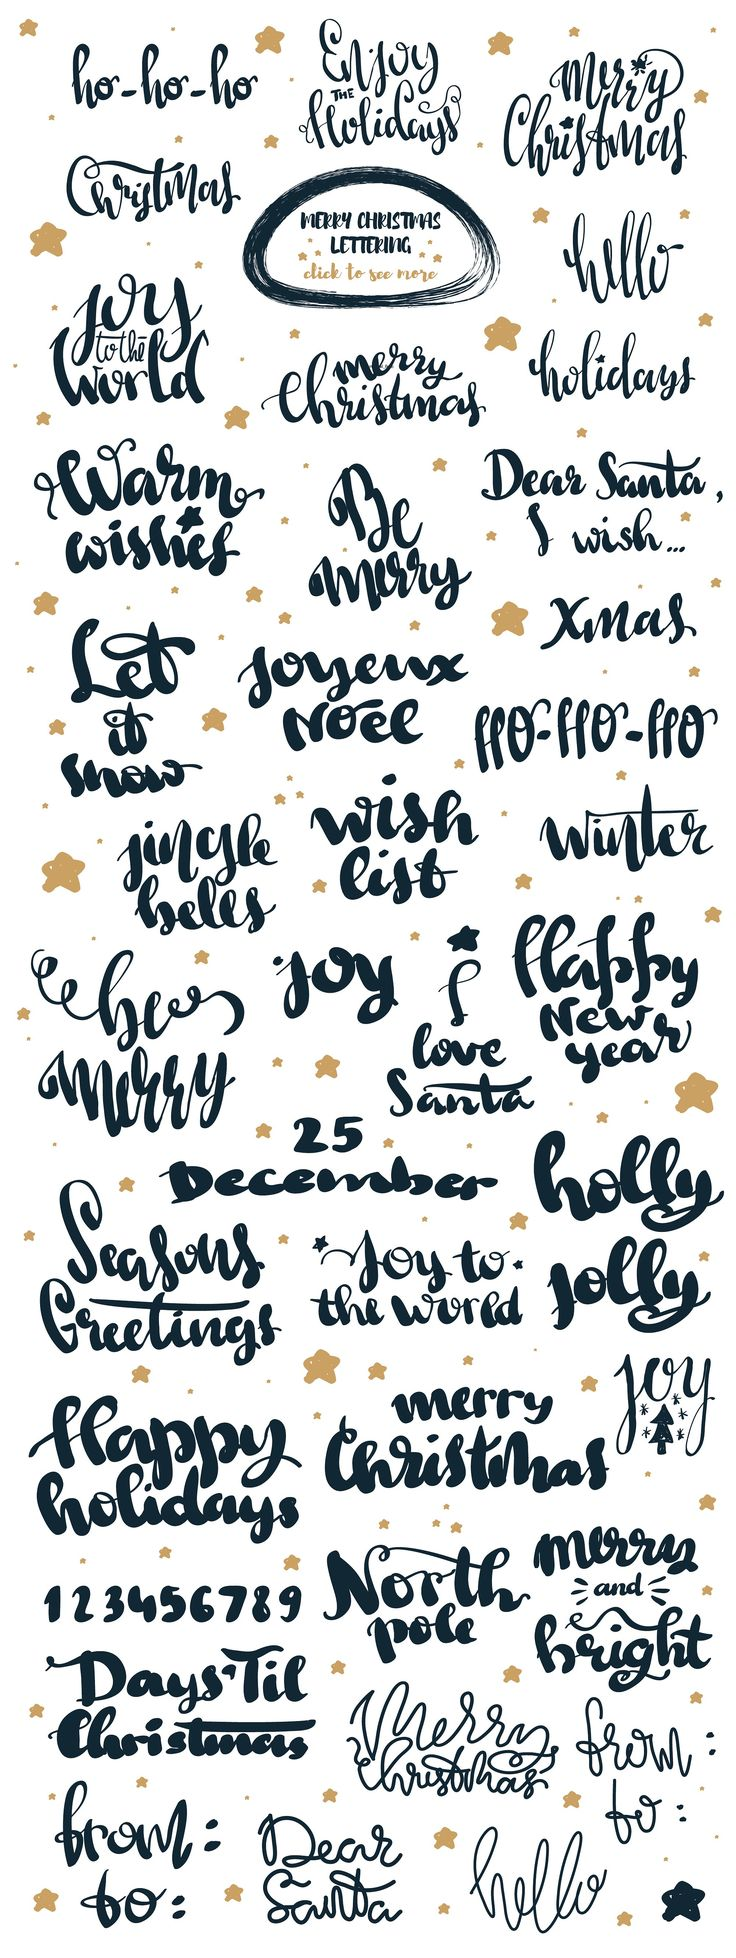 christmas words in pictures